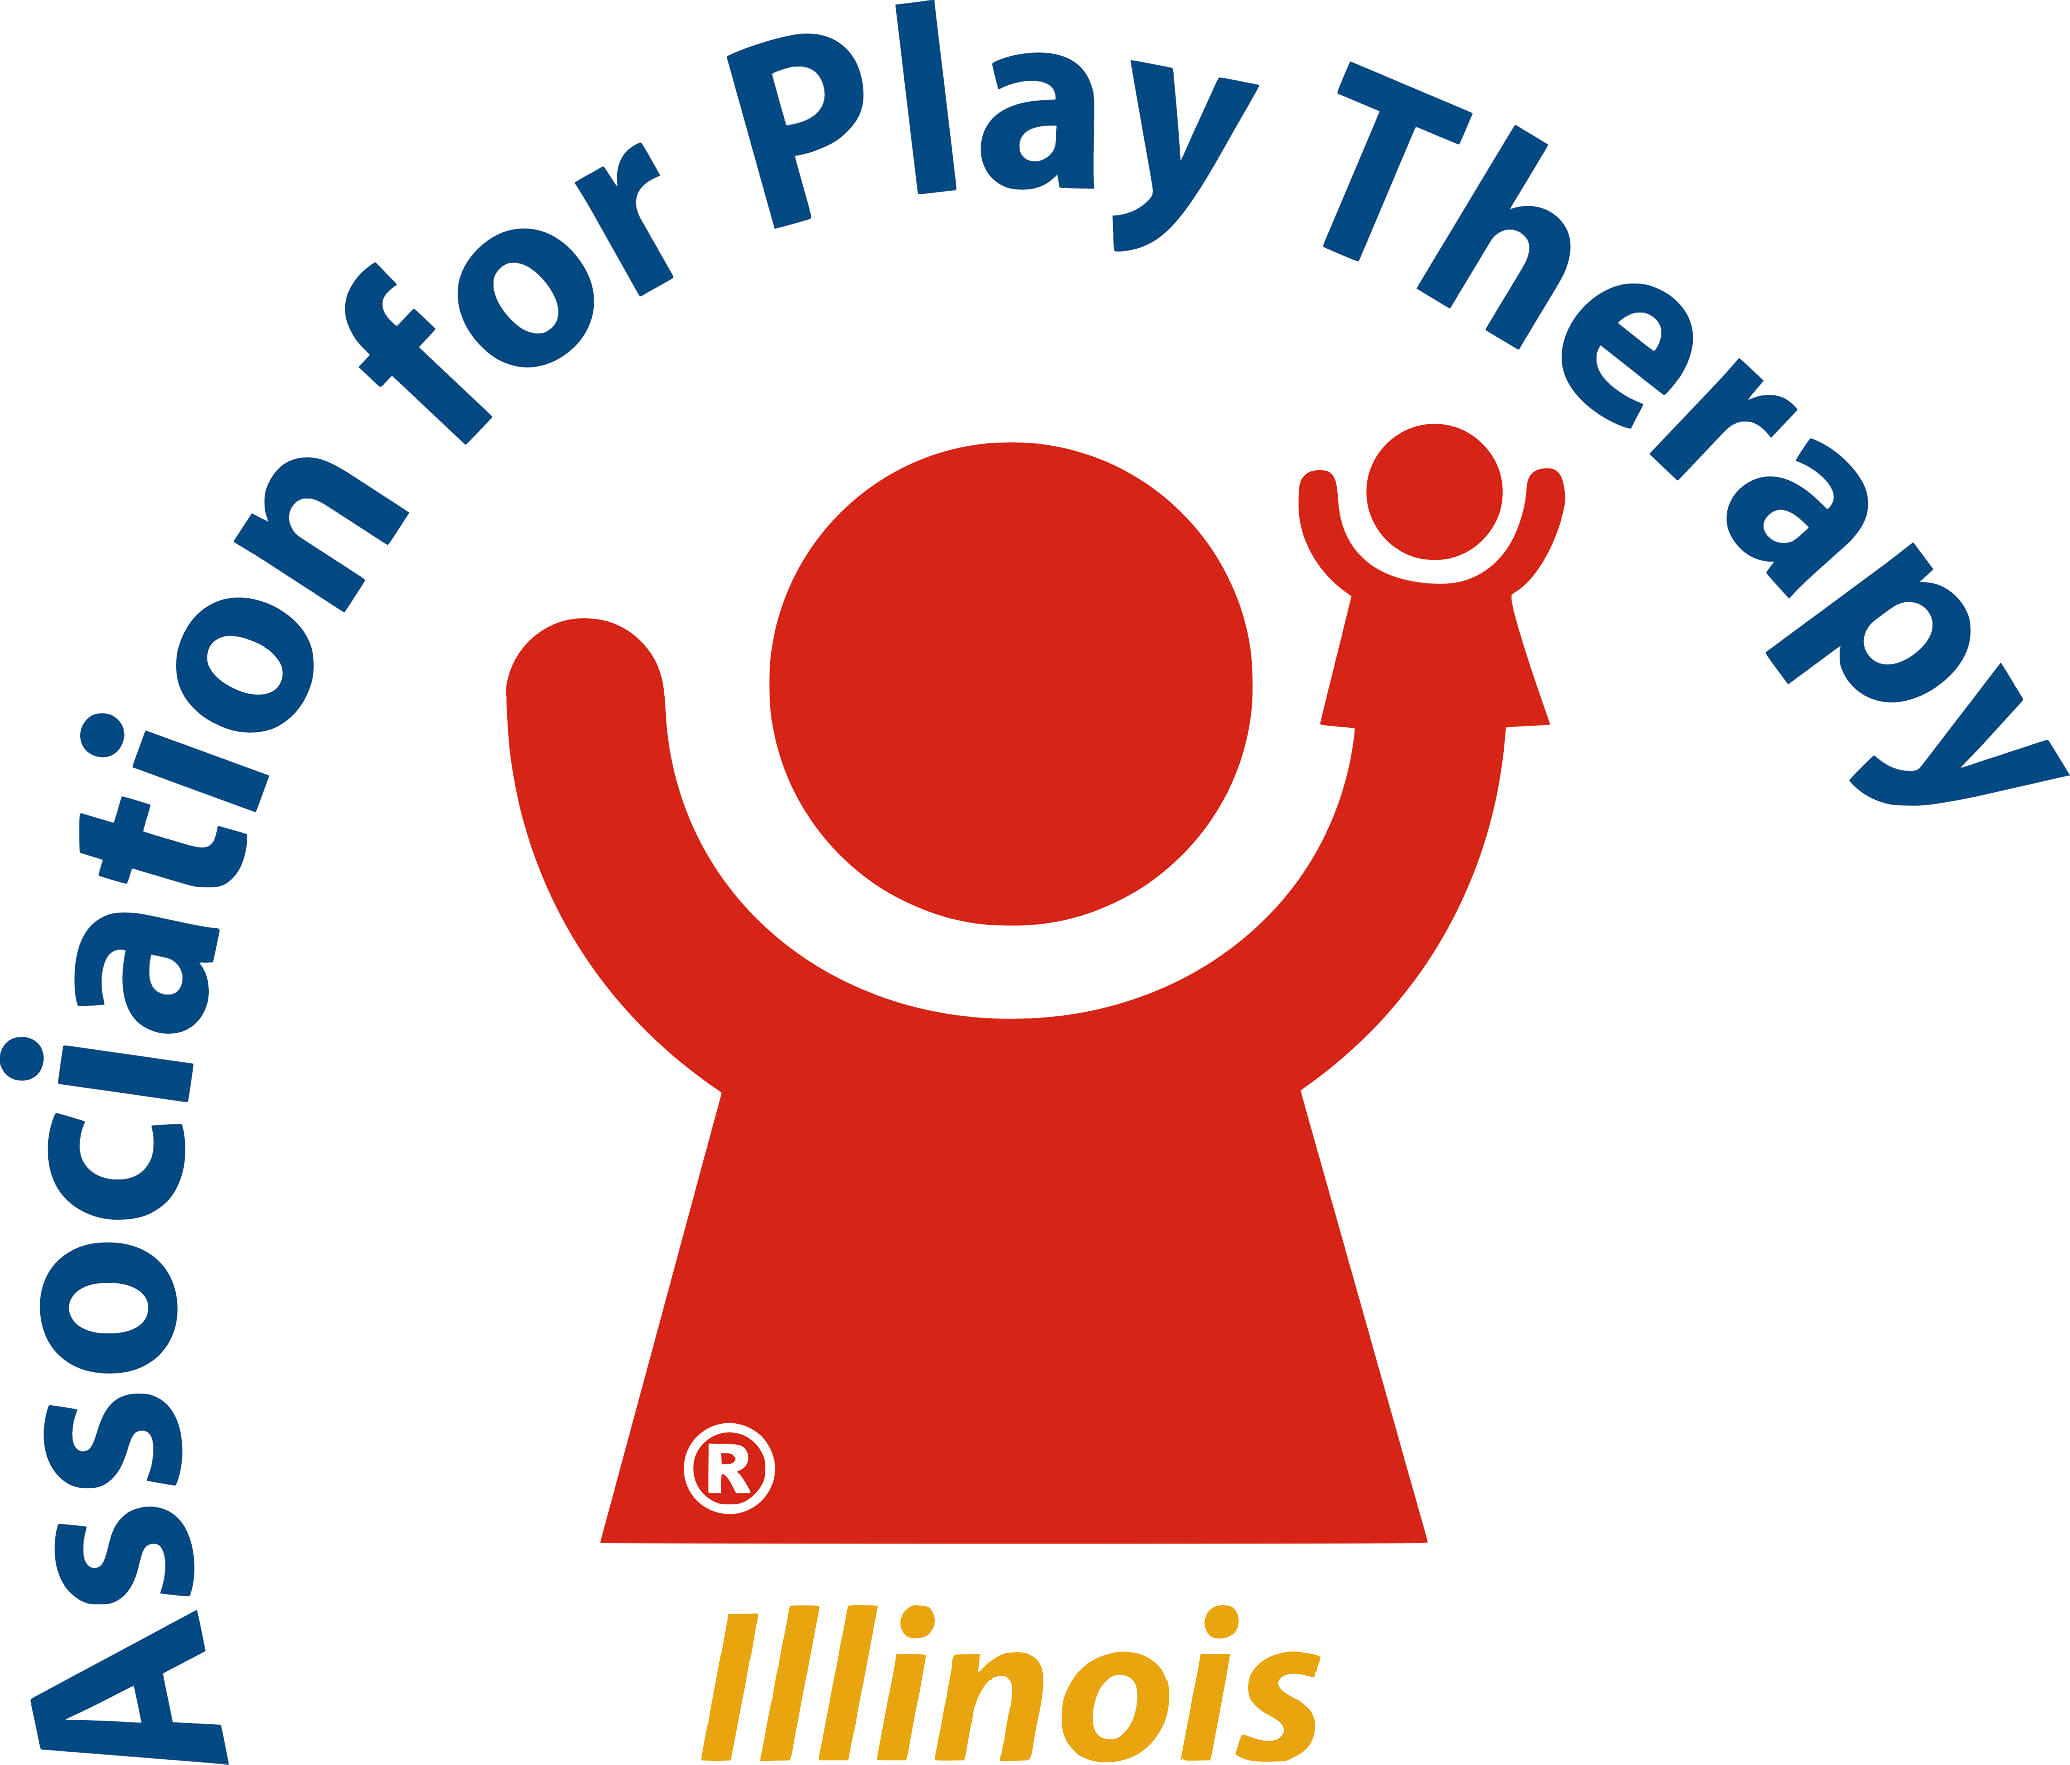 Illinois association for play therapy play therapists illinois apt 1betcityfo Gallery